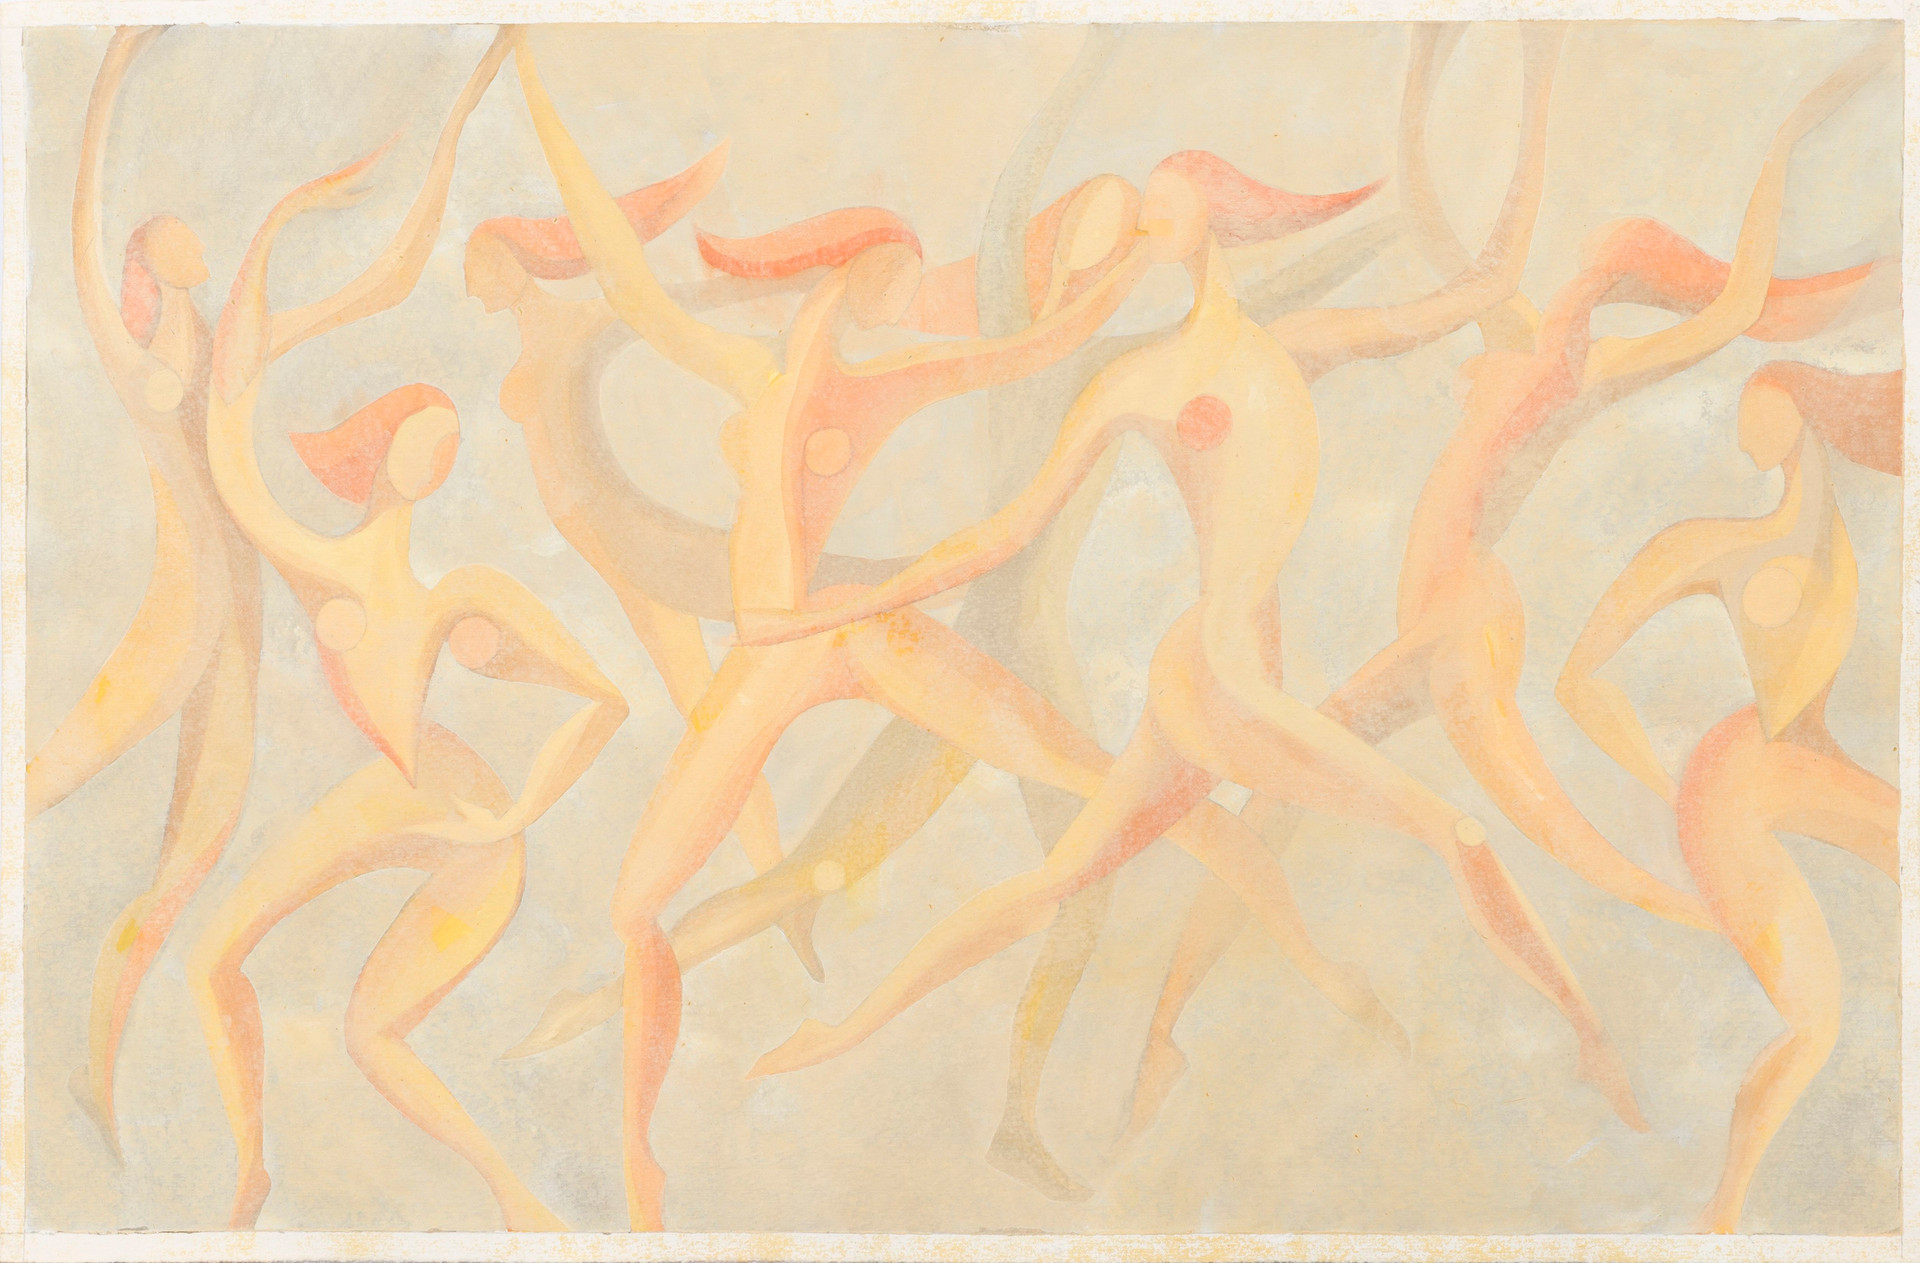 Untitled - nude female figures dancing (light orange)